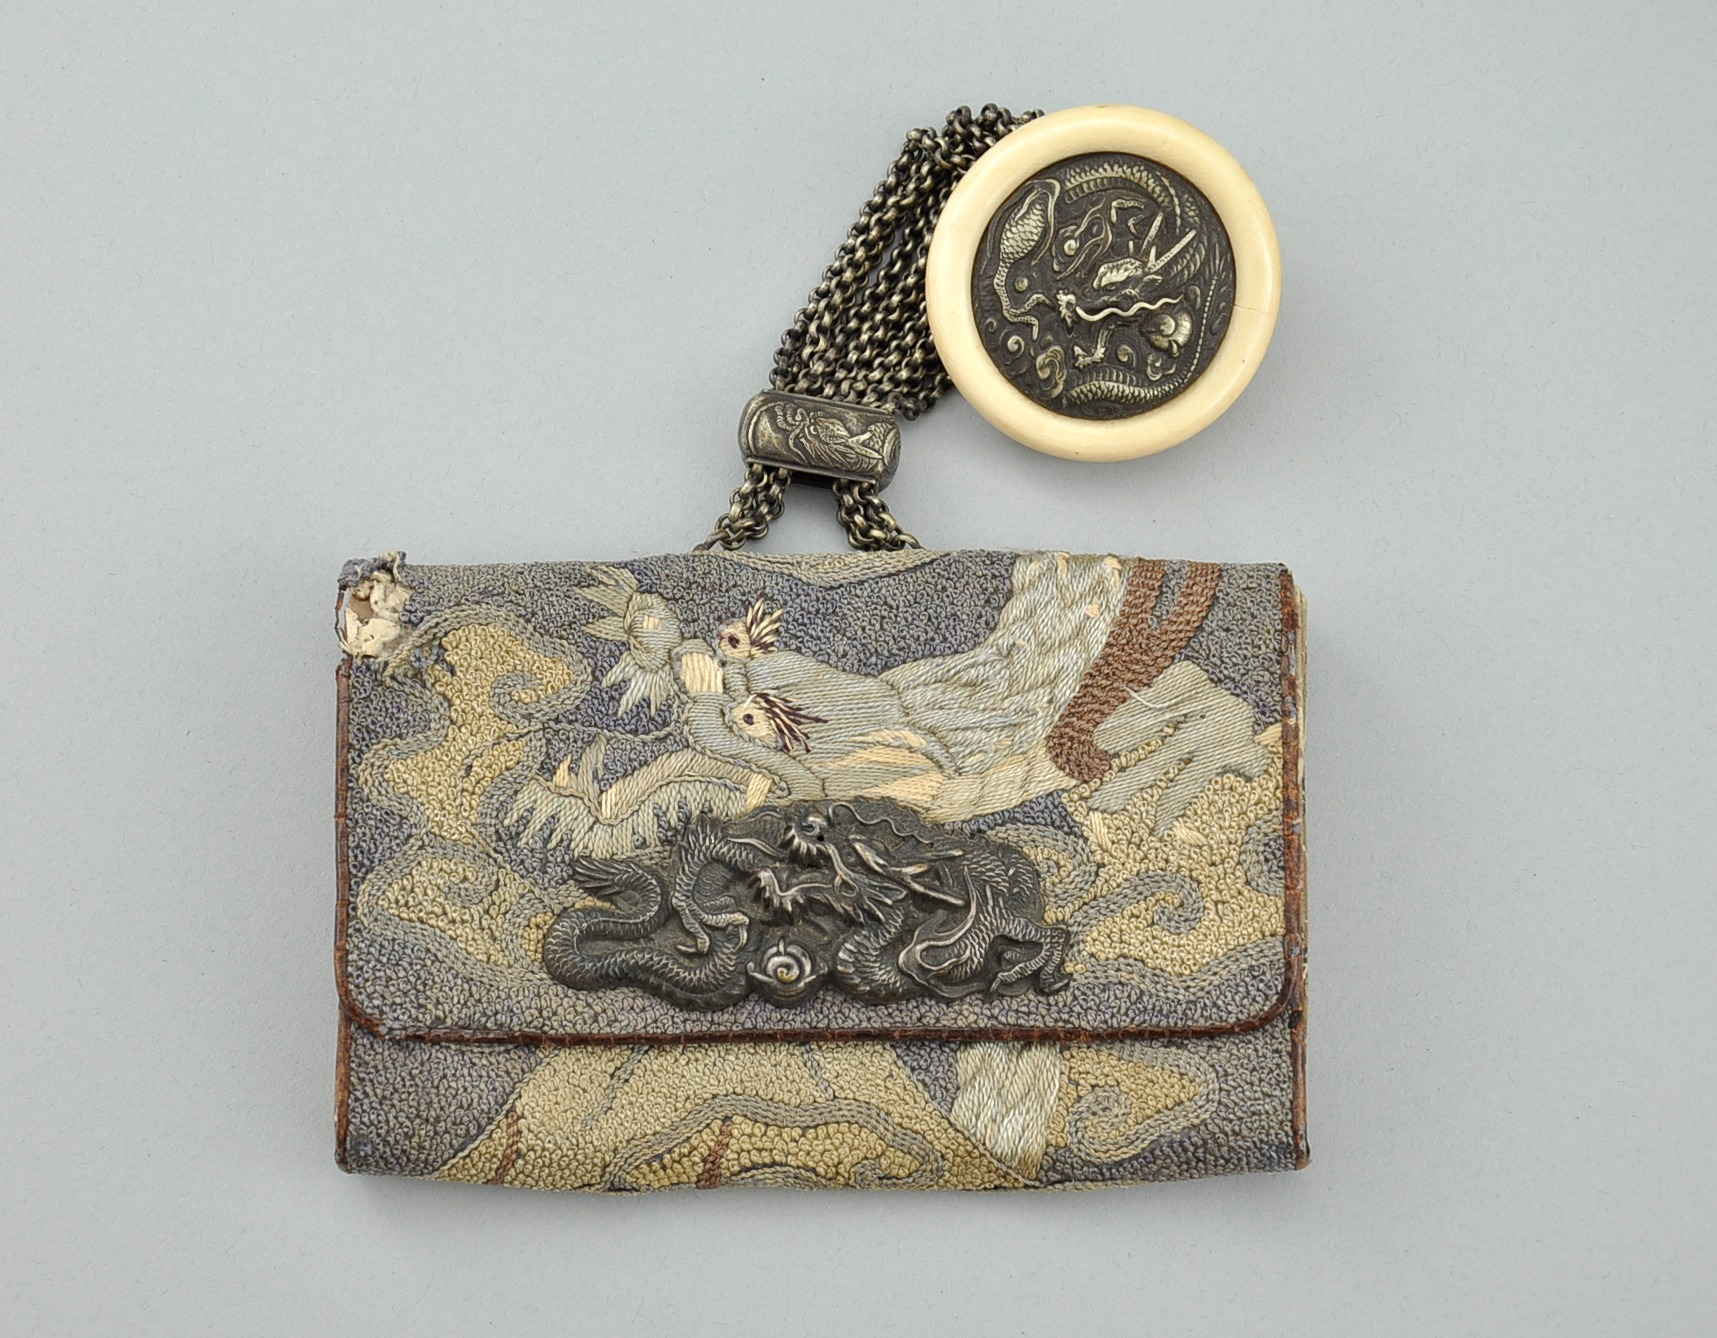 Century And Netsuke Tobacco 75 19th Ca Pouch 327 Sold 09 Japanese Kagamibuta A 26 09